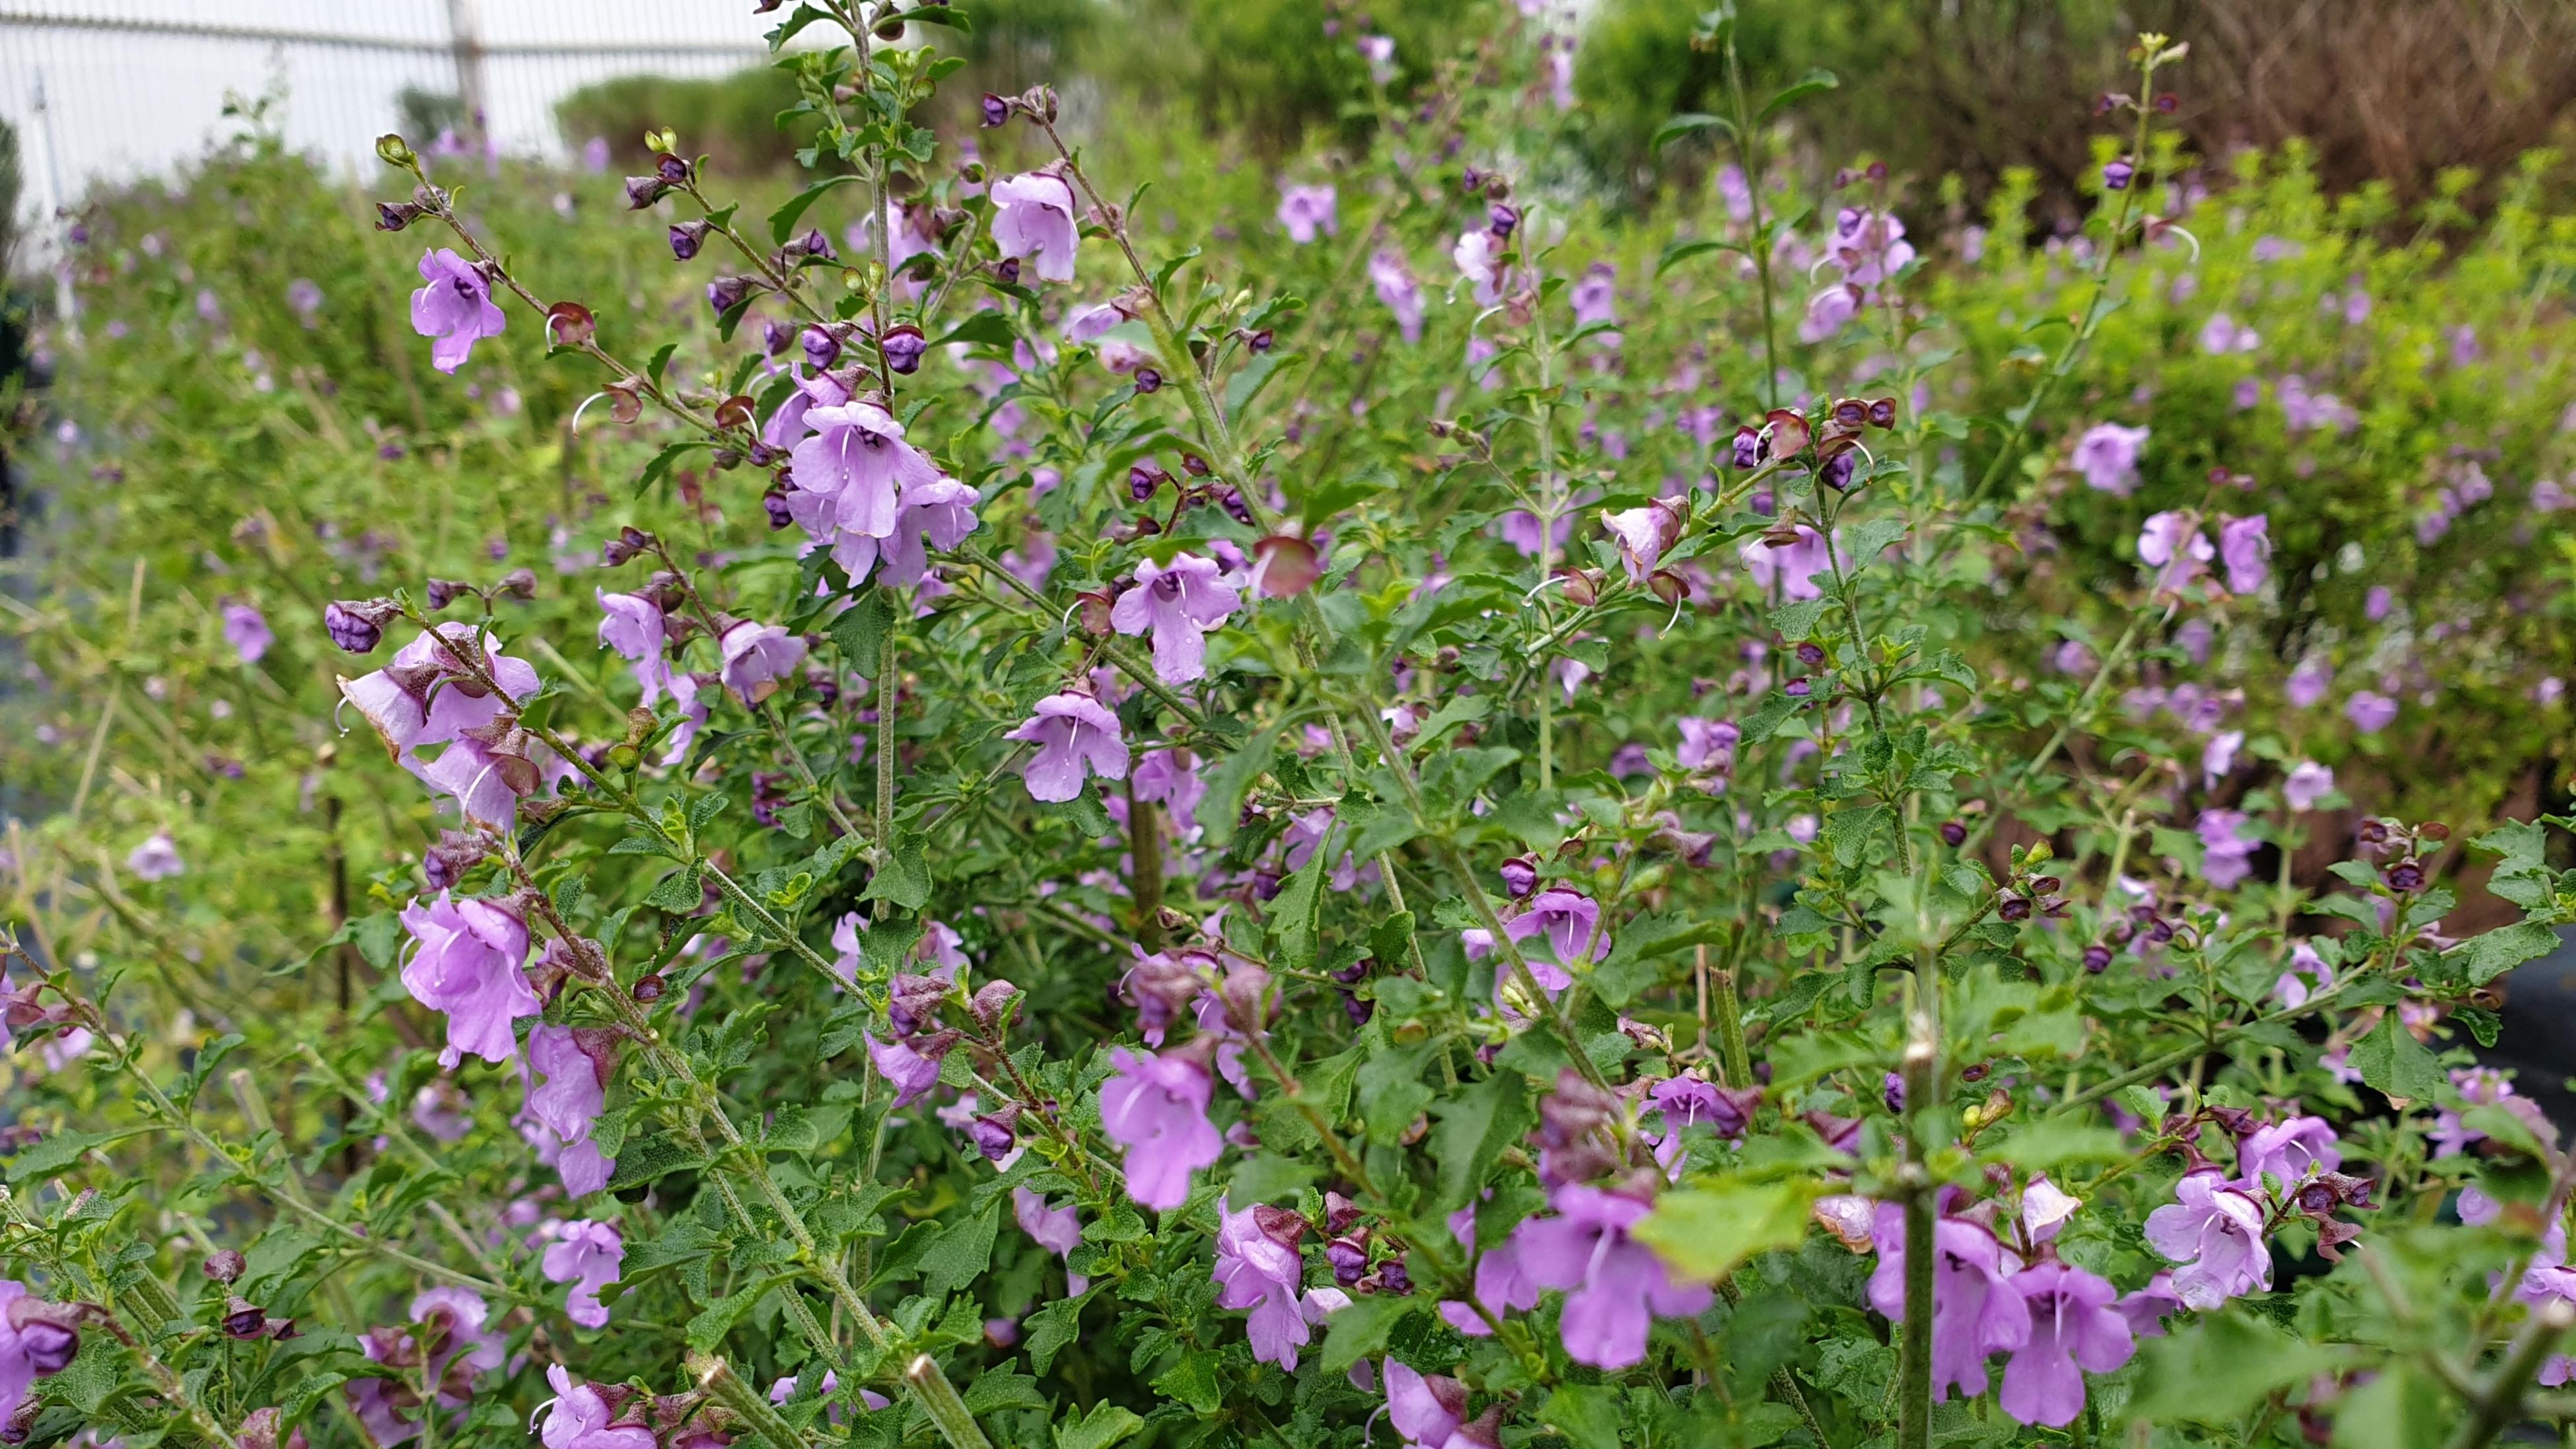 A native thyme plant with purple flowers